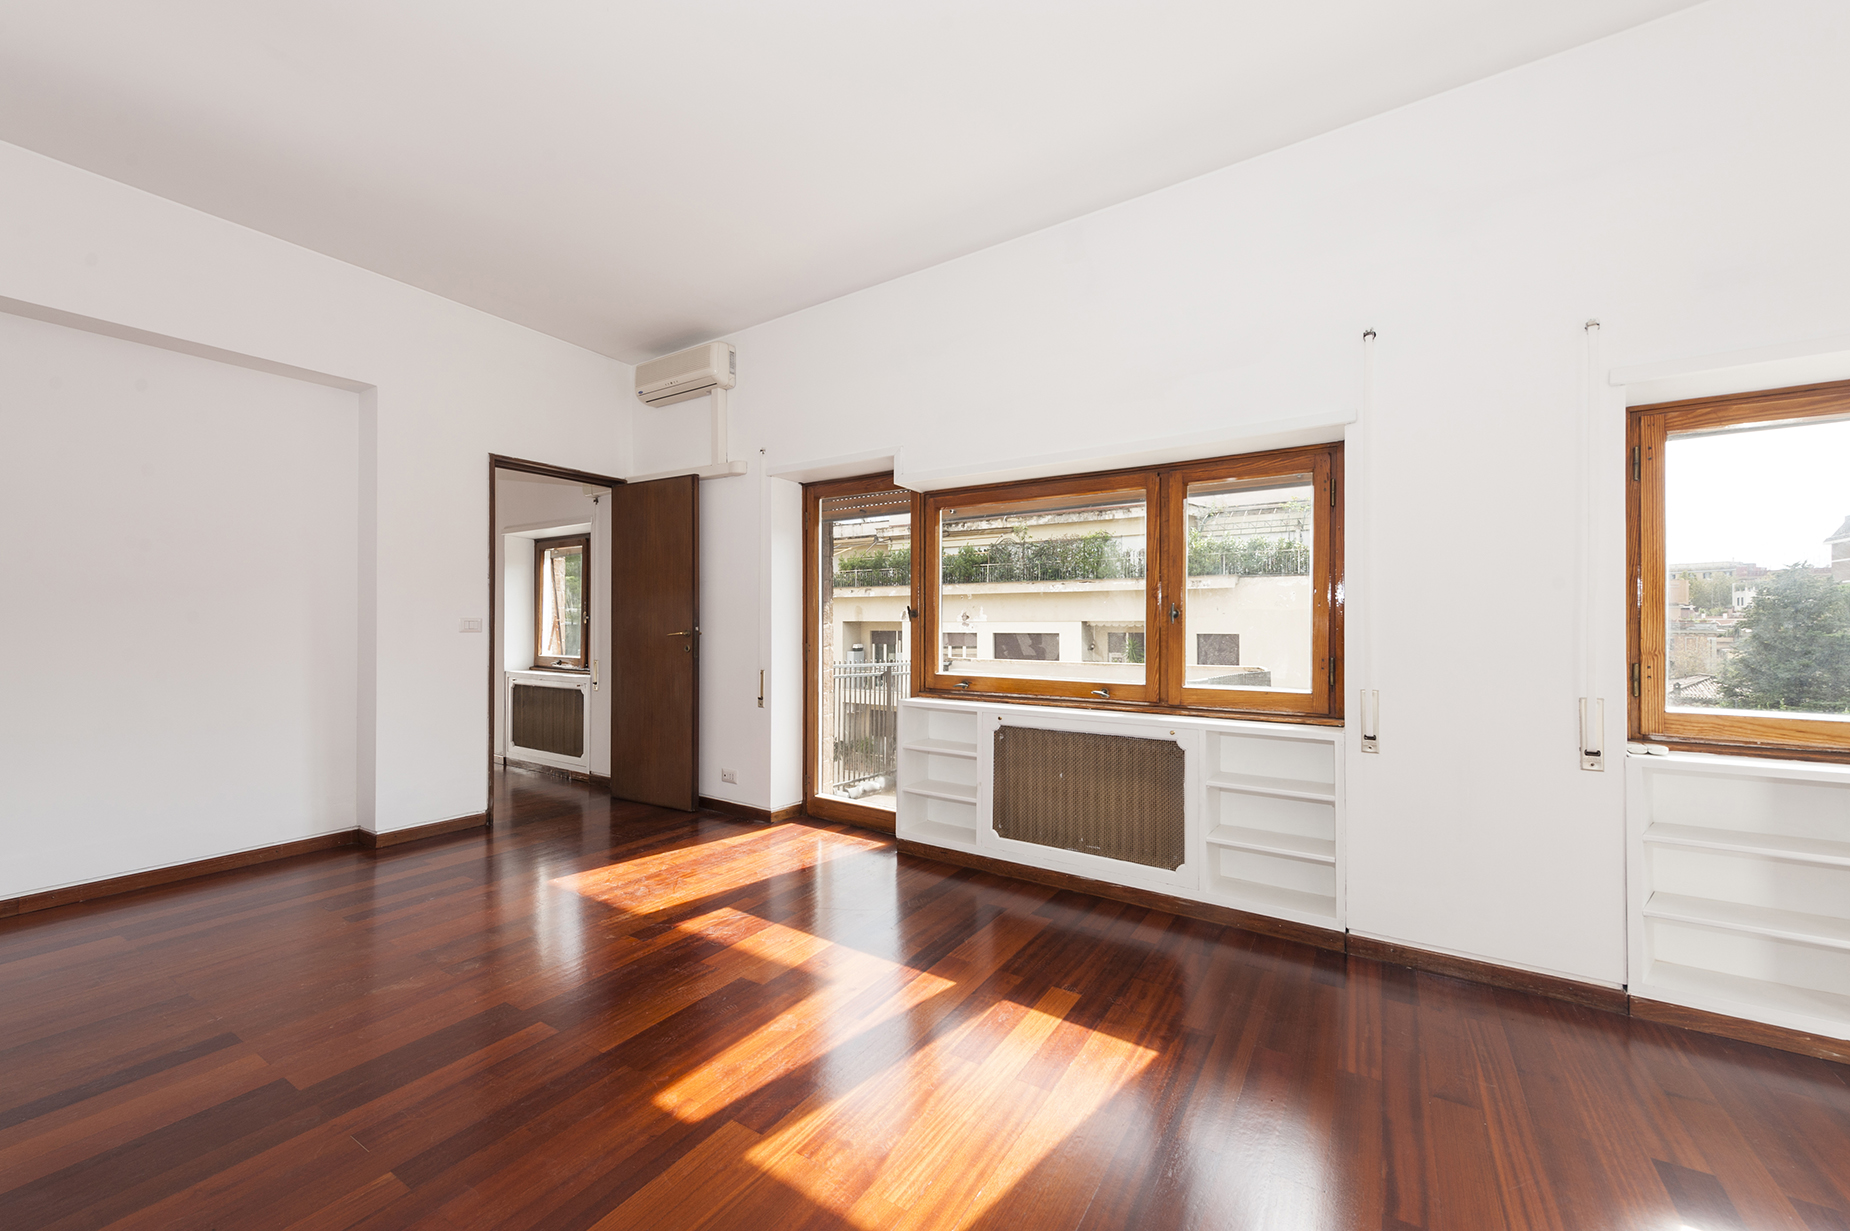 Additional photo for property listing at Bright apartment overlooking the green Viale Tiziano Rome, Rome 00195 Italie